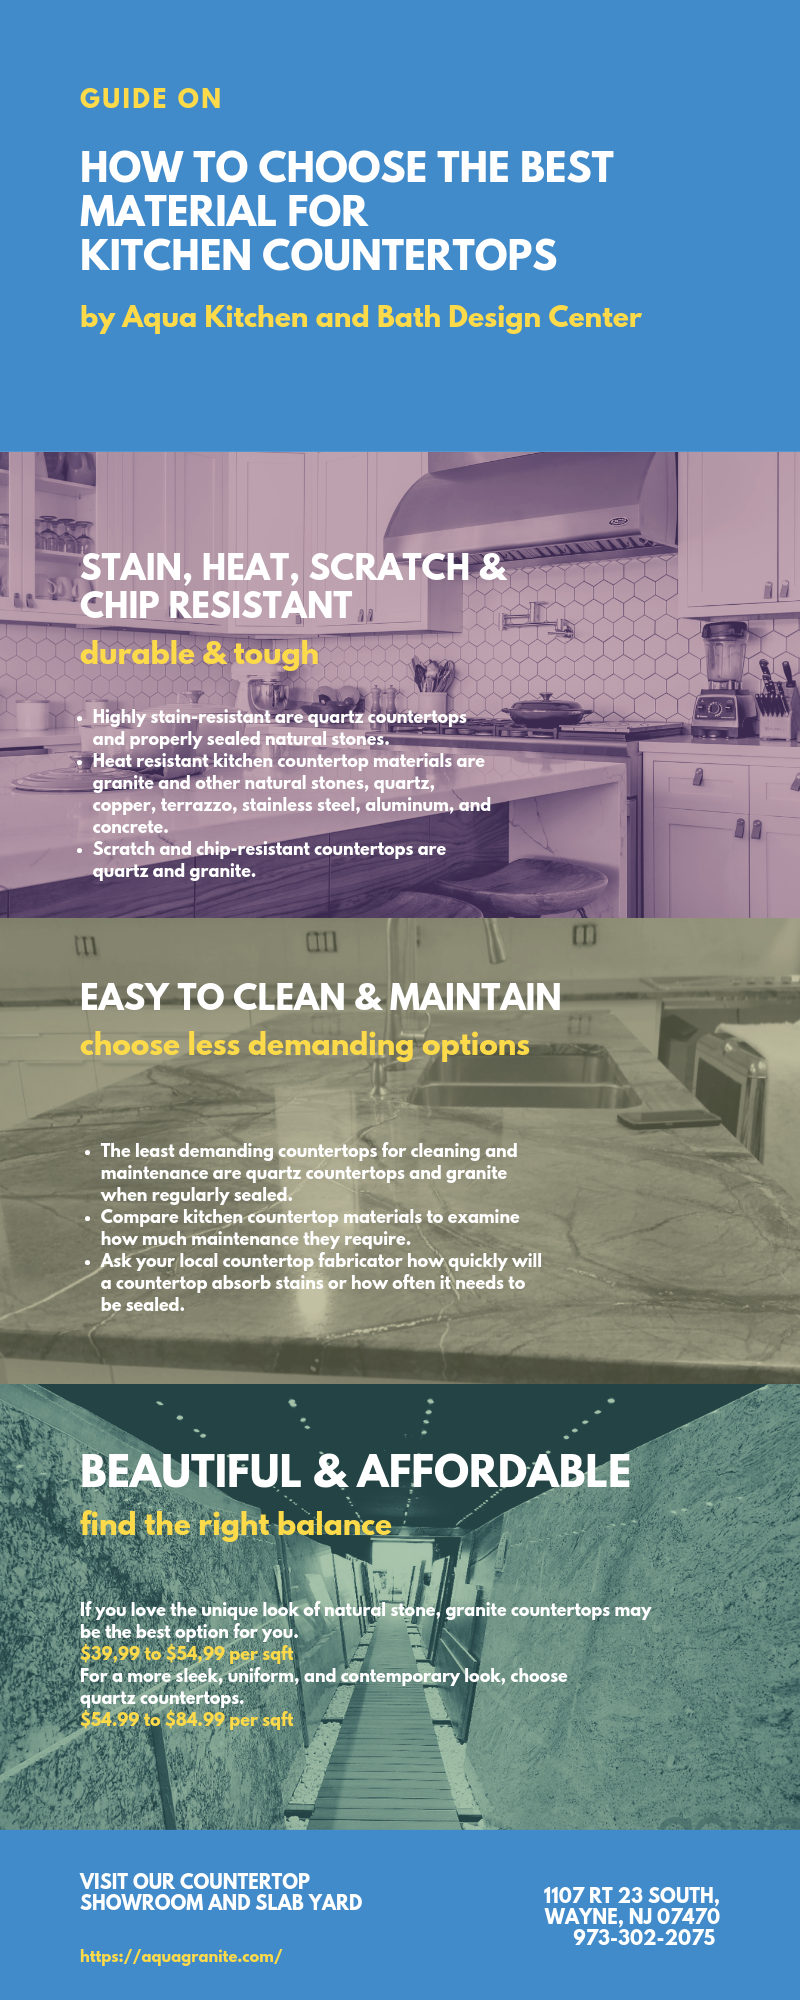 How to Choose the Best Material for Kitchen Countertops INFOGRAPHIC